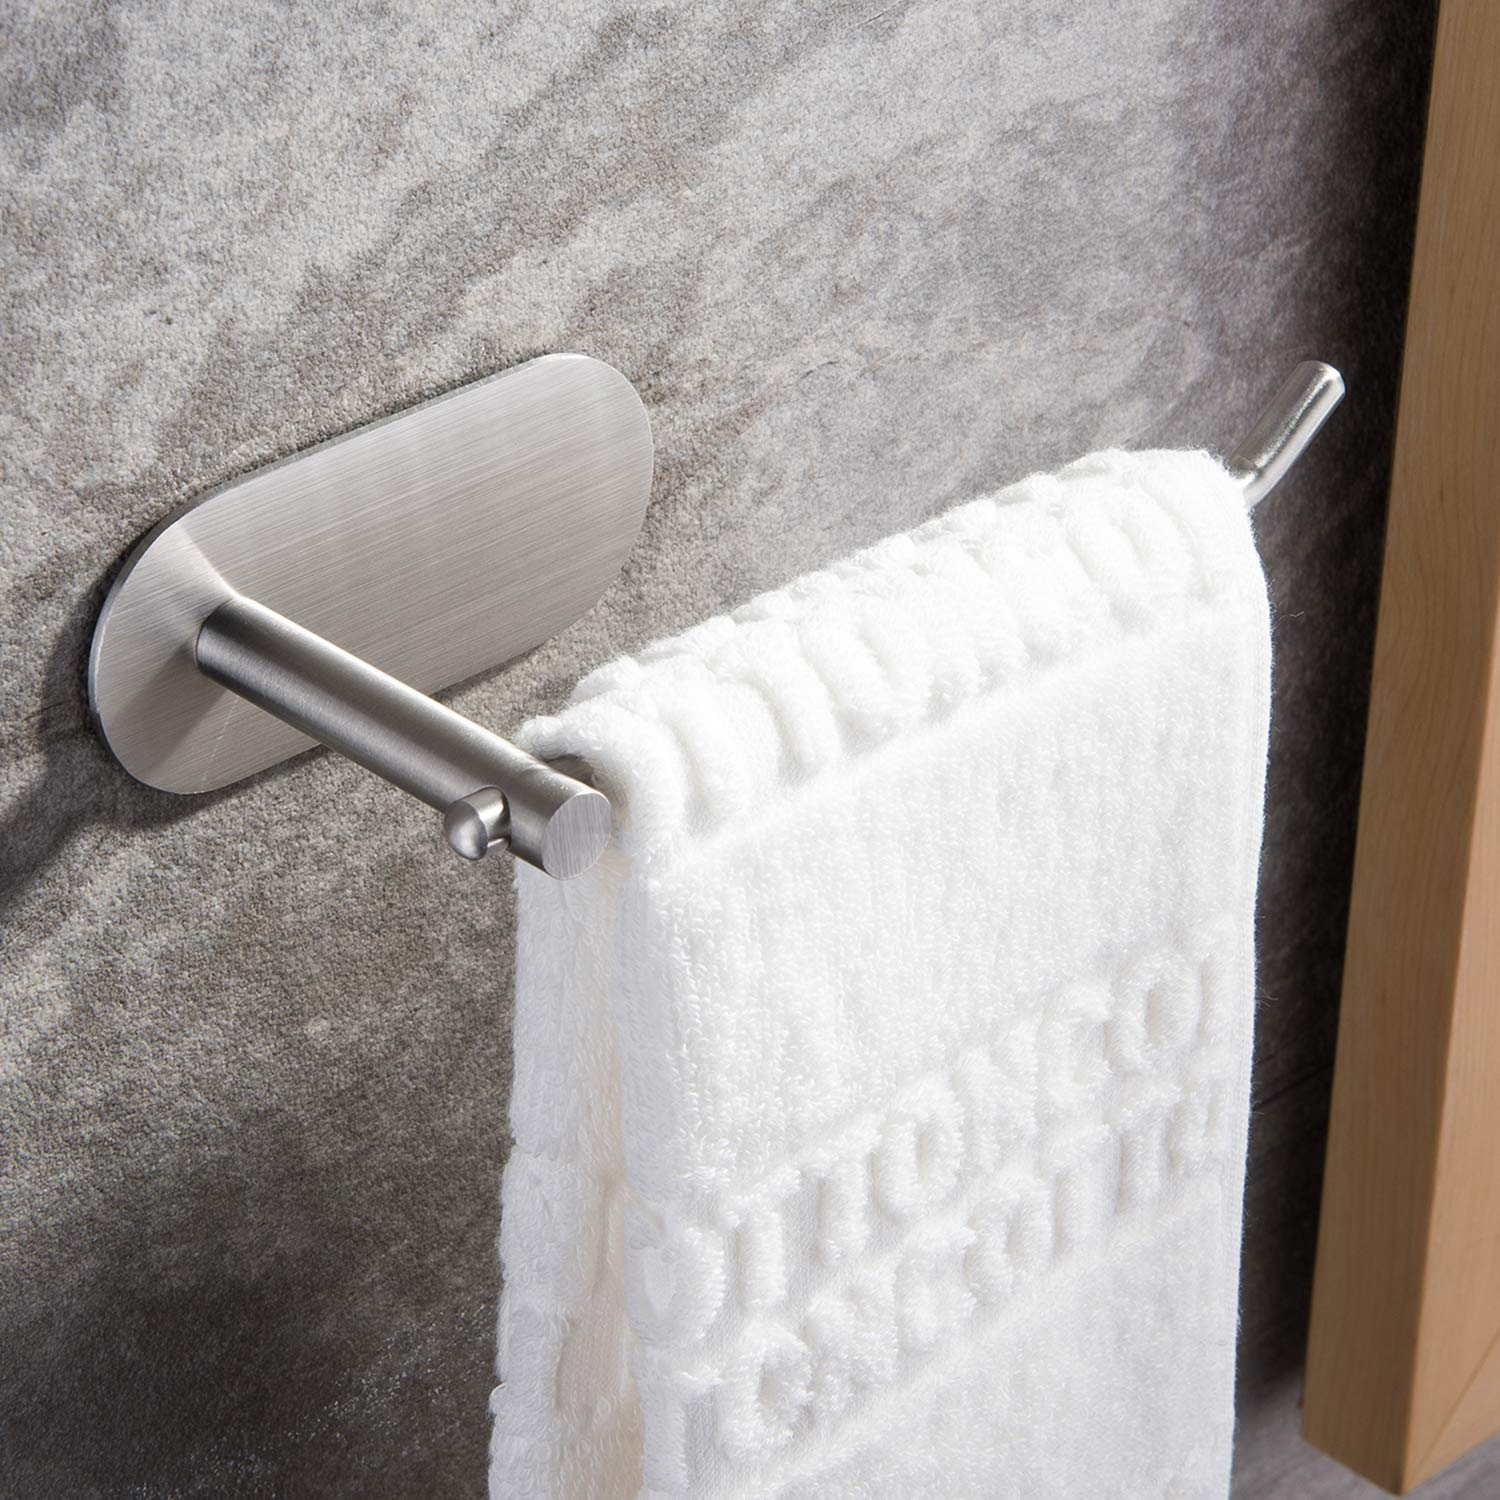 SUNTECH Hand Towel Holder/ Towel Ring - Self Adhesive Towel Bar for Kitchen and Bathroom No Drilling by SUNTECH